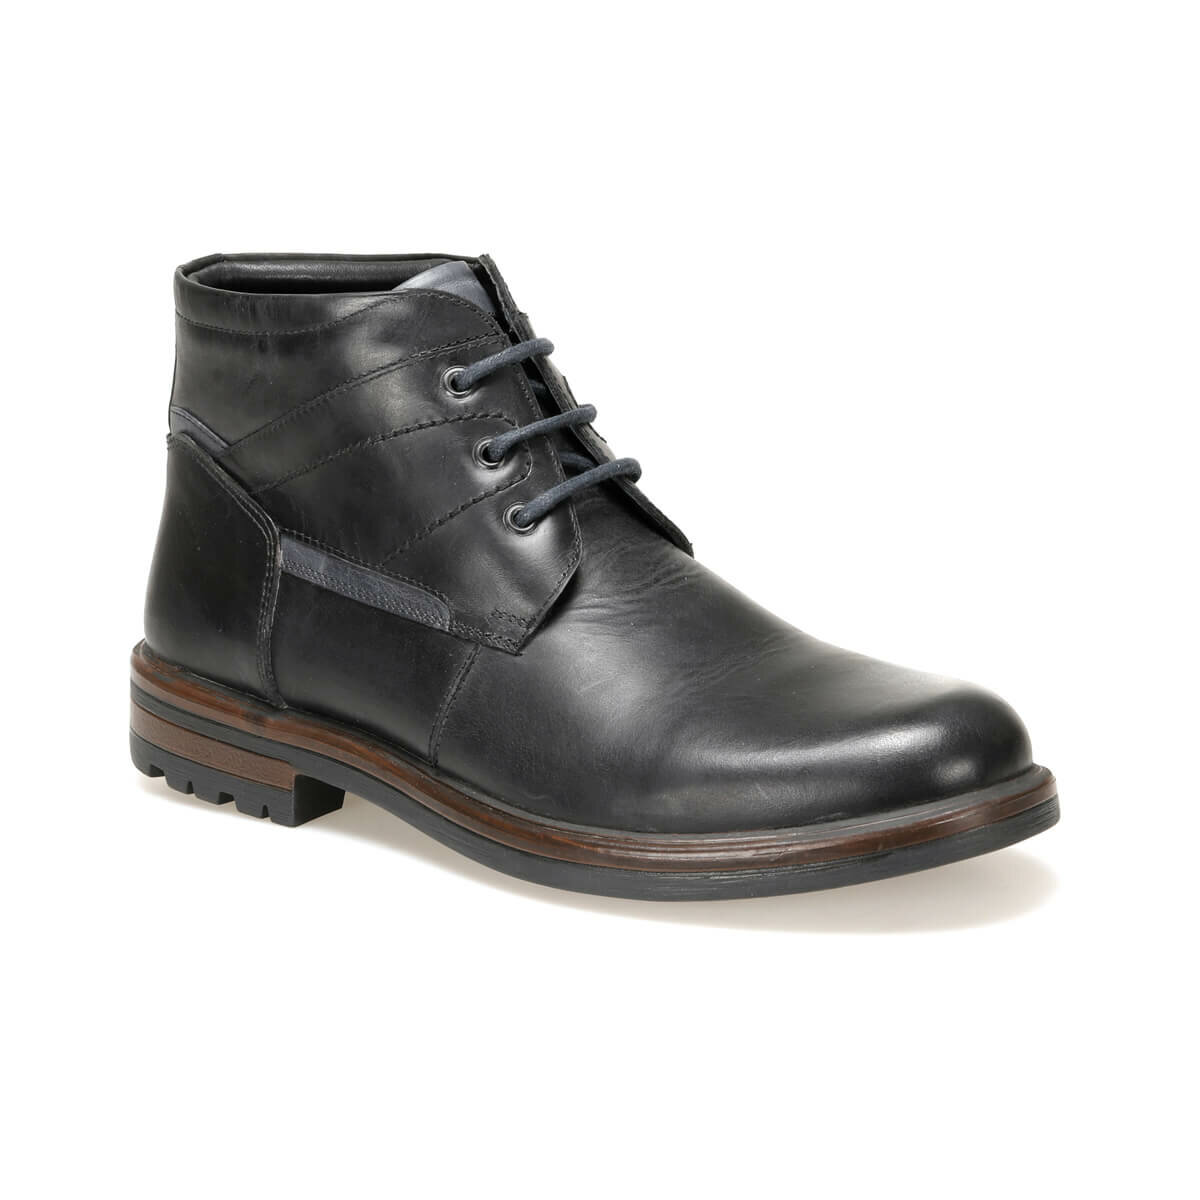 FLO 4132 Black Men Boots Garamond